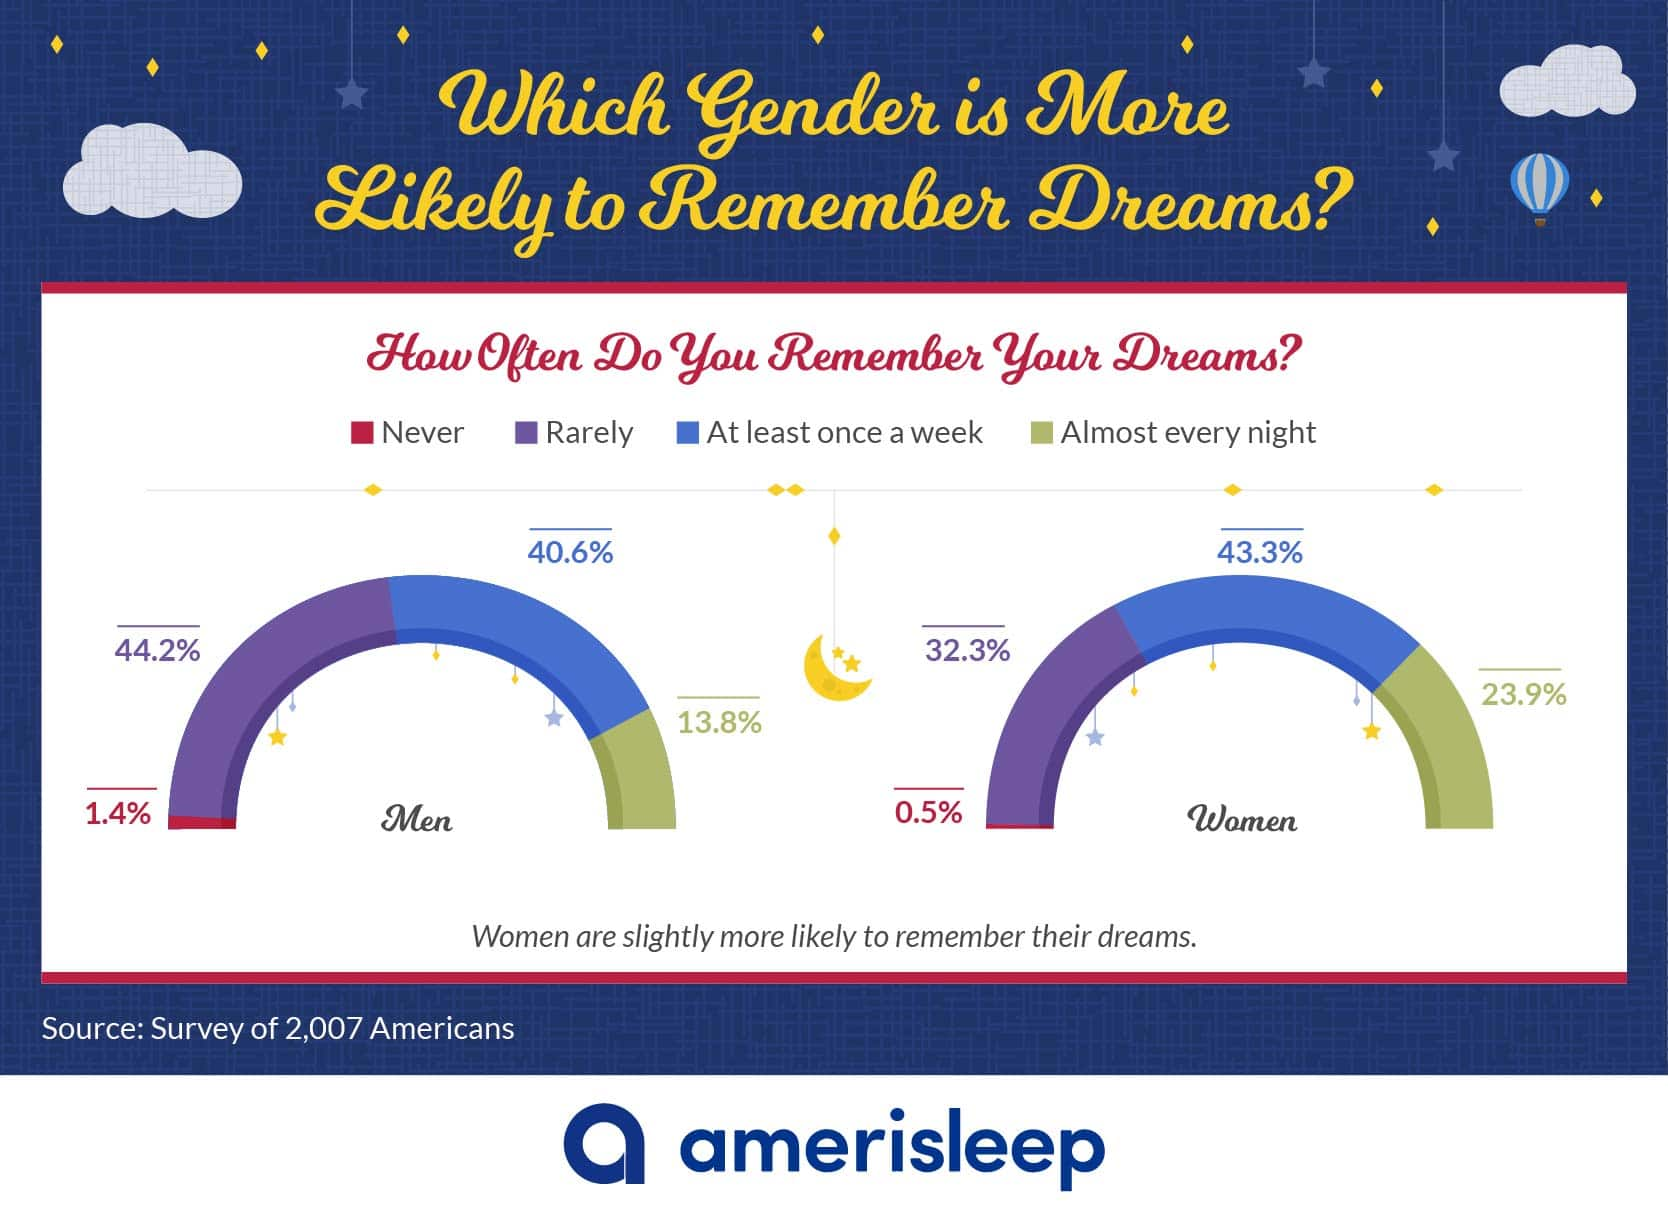 Which Gender is More Likely to Remember Dreams?